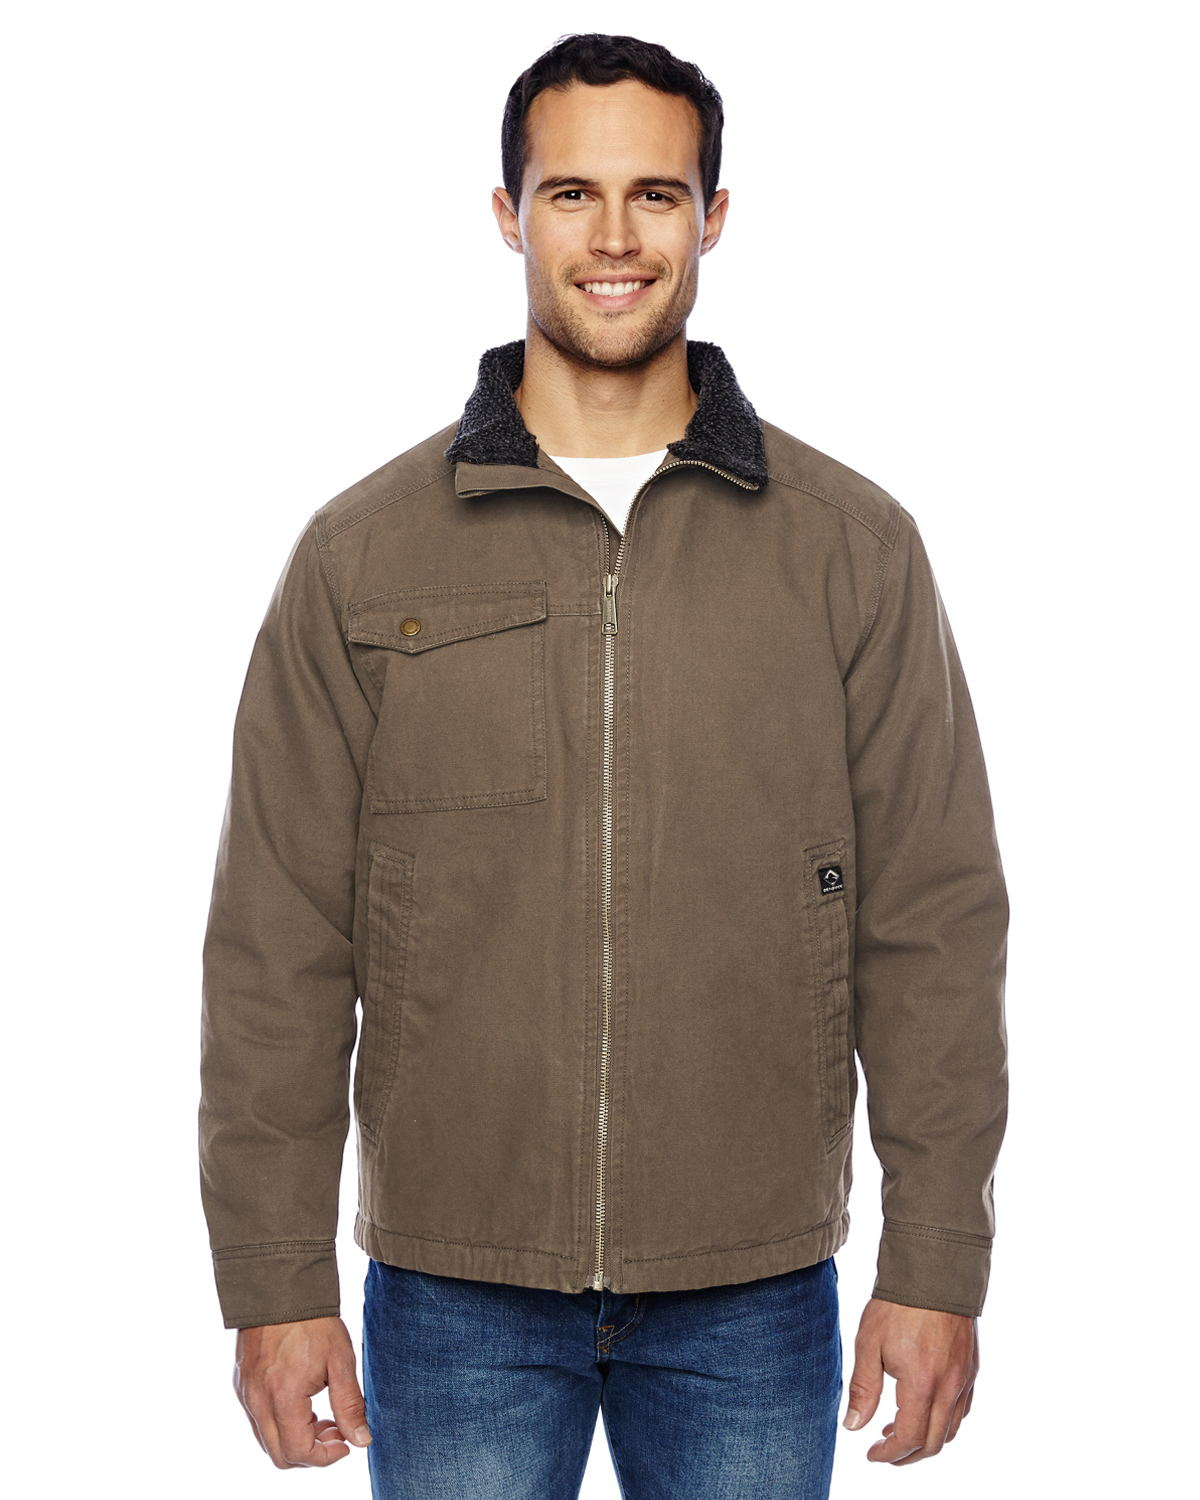 Dri Duck DD5037 - Endeavor Jacket